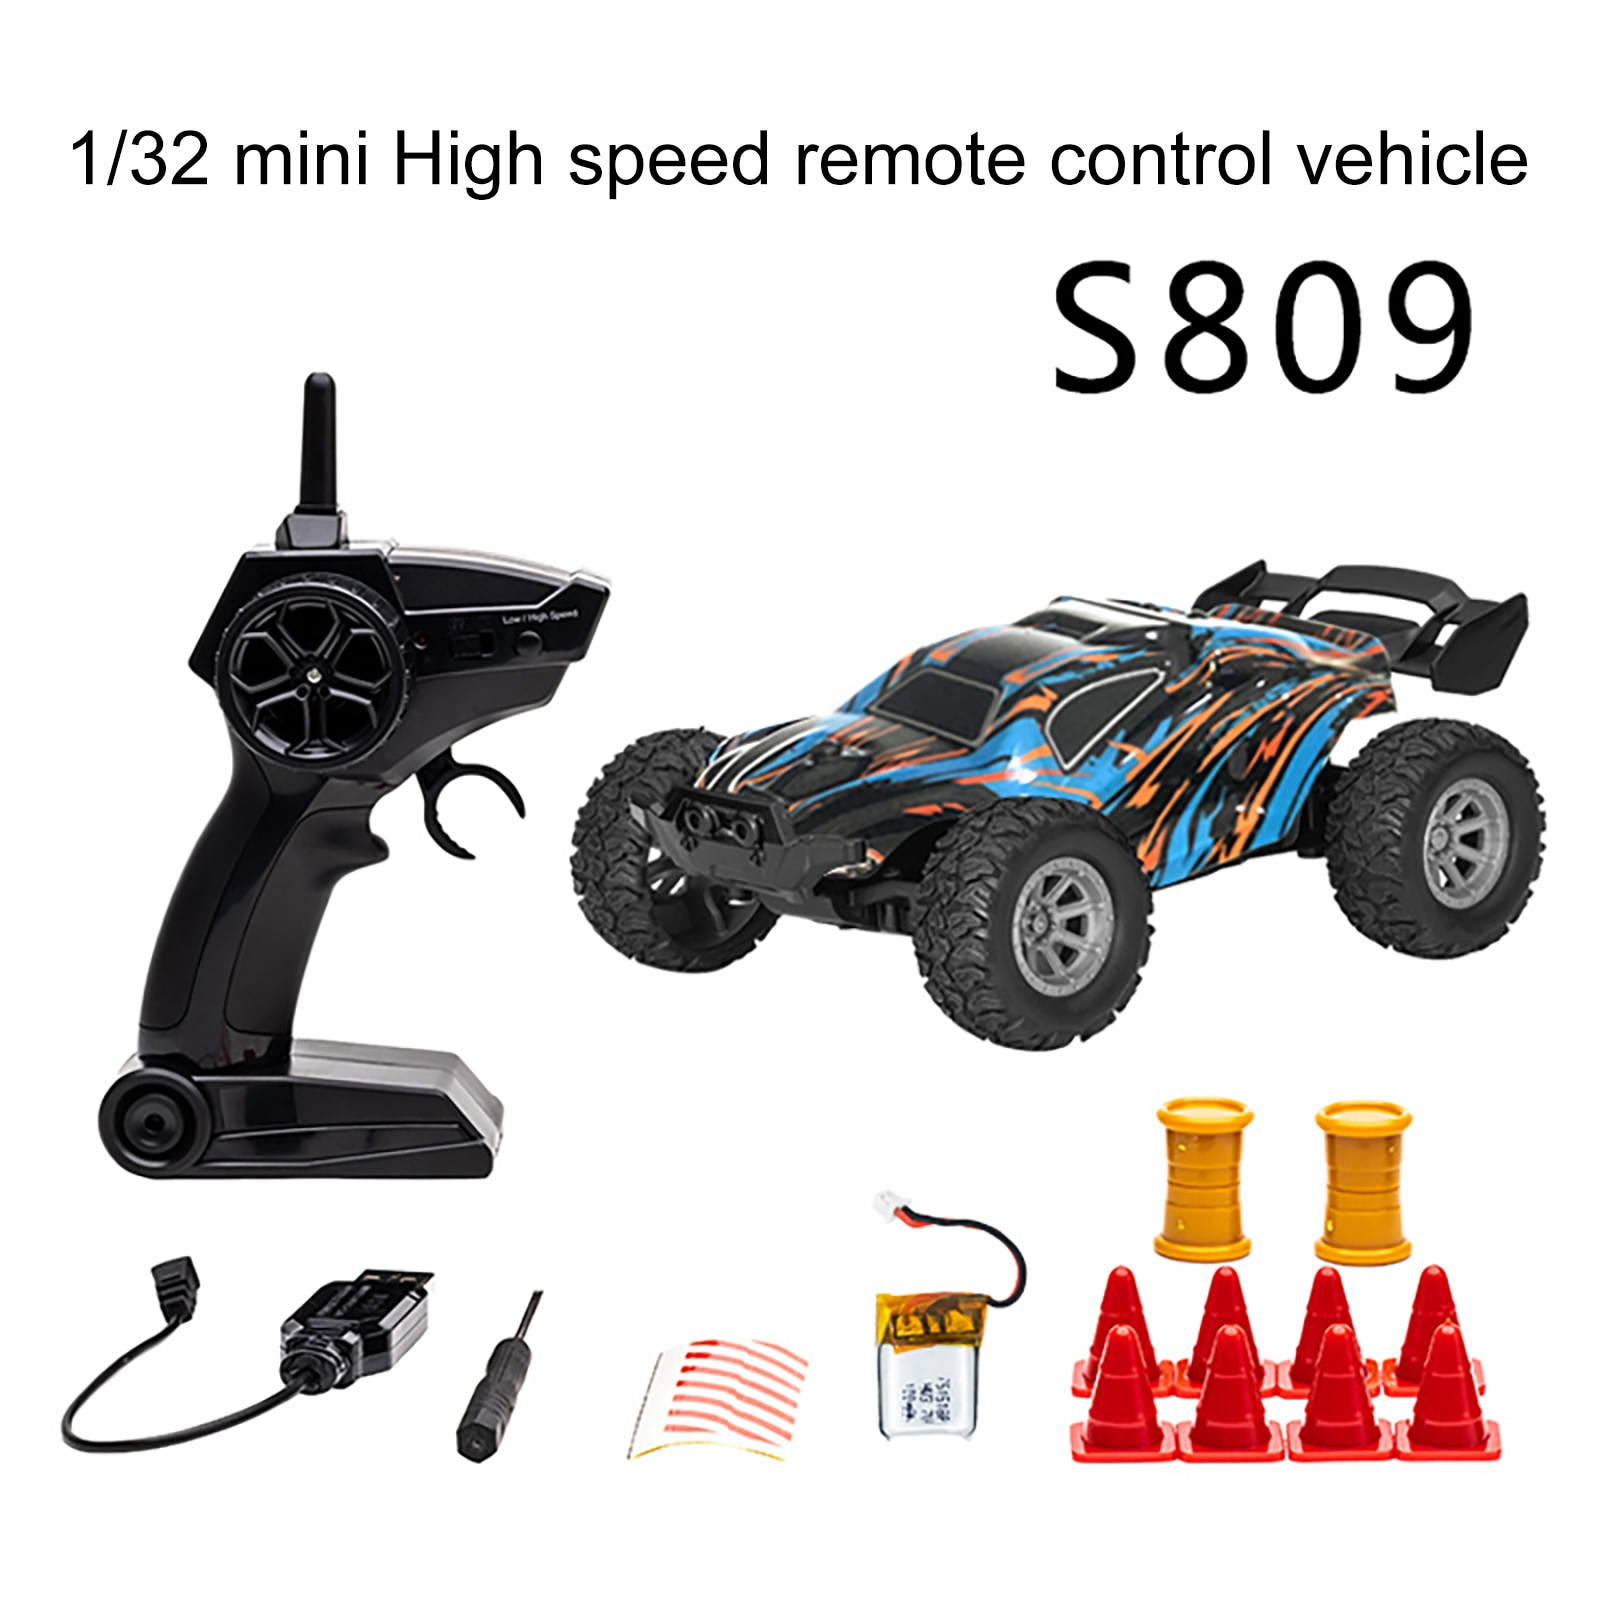 1/32 Remote Control Car 2.4 GHZ High Speed Racing RC Car 4WD  Off Road Vehicle Buggy Toy with 1/2/3 Batteries For Boys Kids Gift enlarge